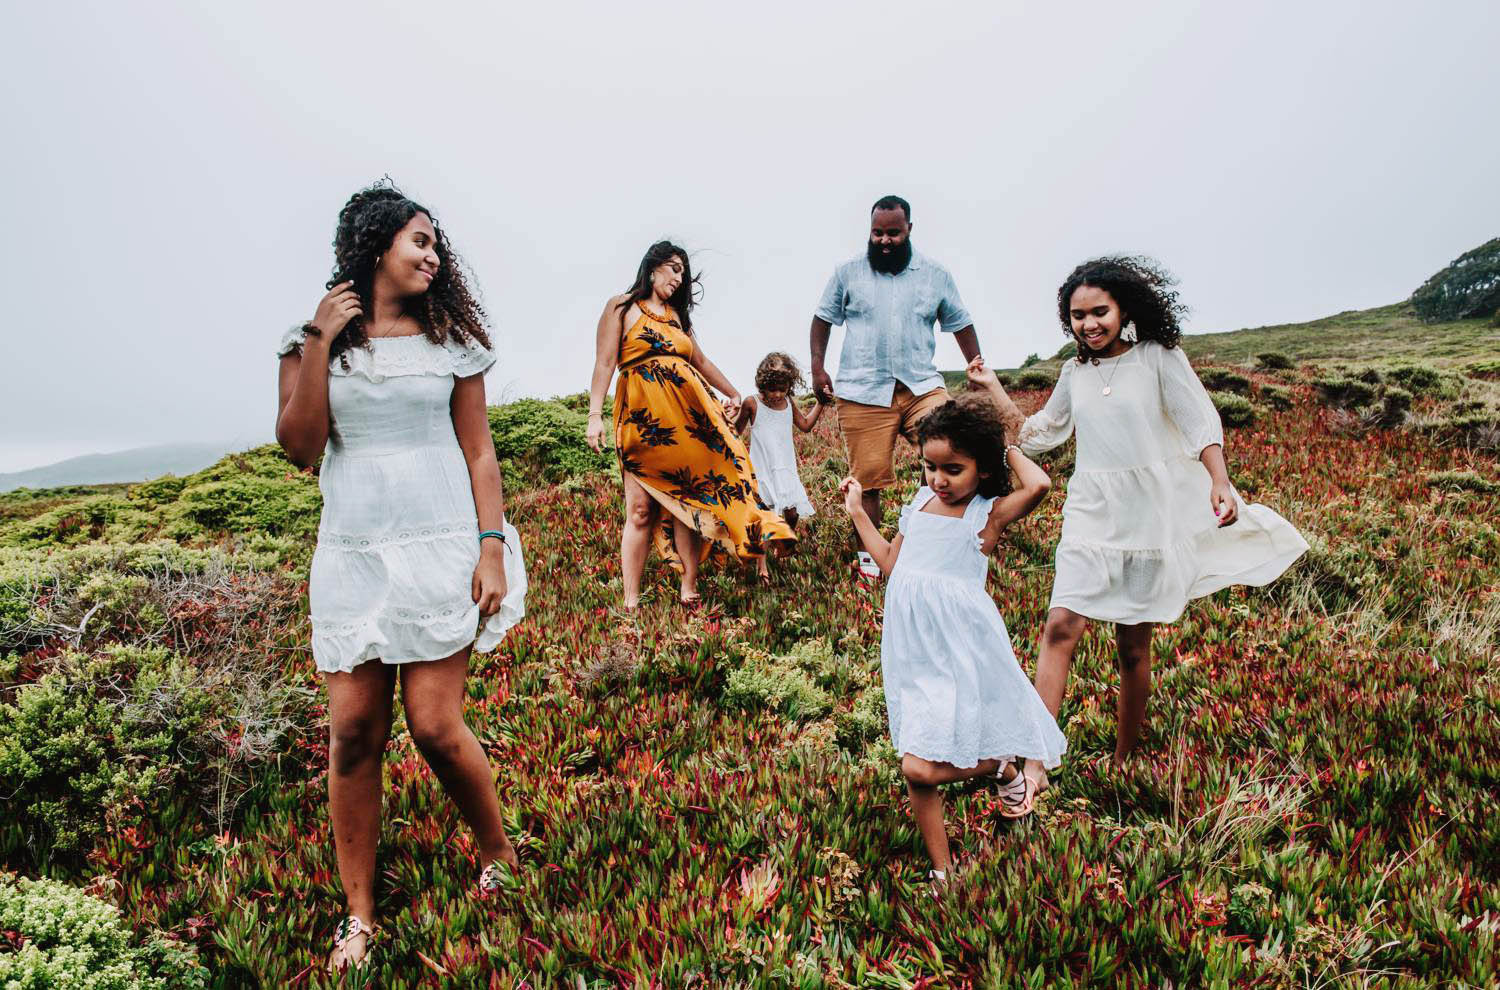 Captured Happiness Photography photographs a family in Hawaii as they anticipate the birth of their 5th child